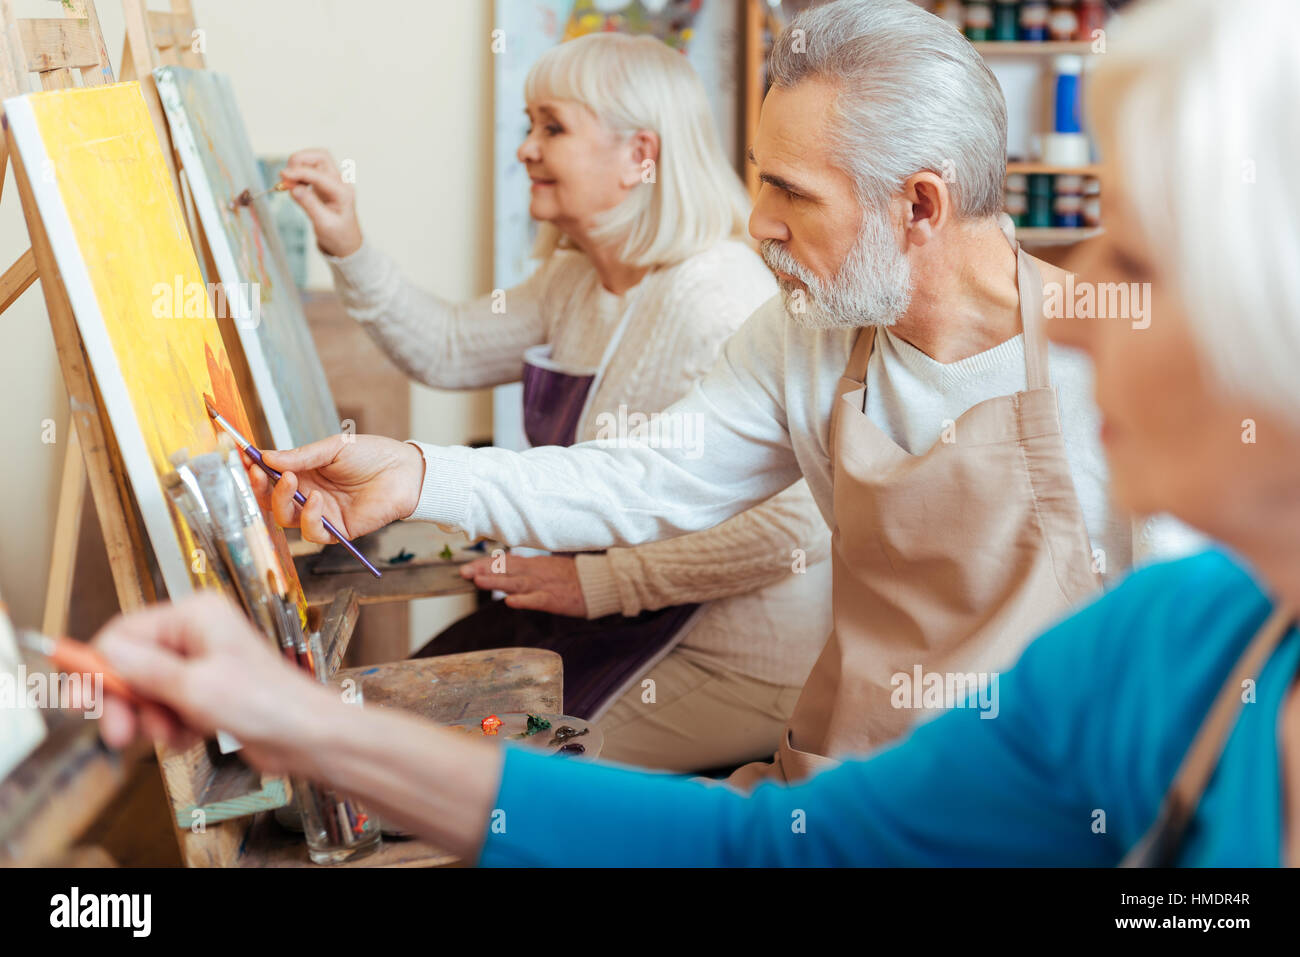 Three professional artists spending time in painting studio - Stock Image